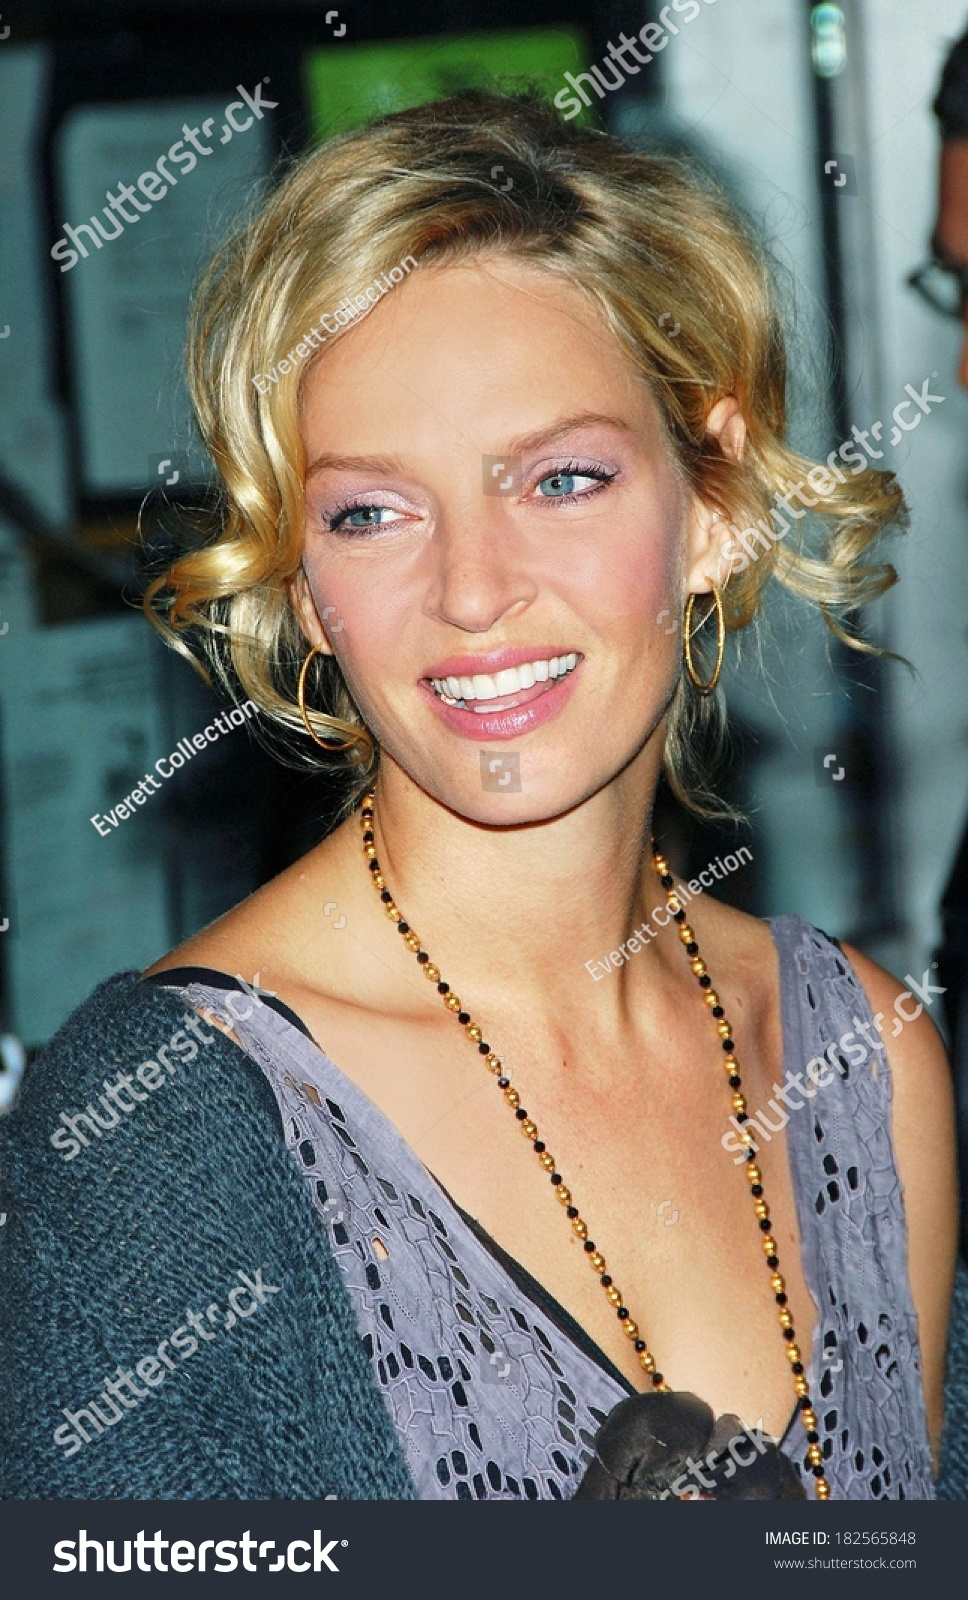 Uma Thurman Life Before Her Eyes Stock Photo 182565848 ... Uma Thurman